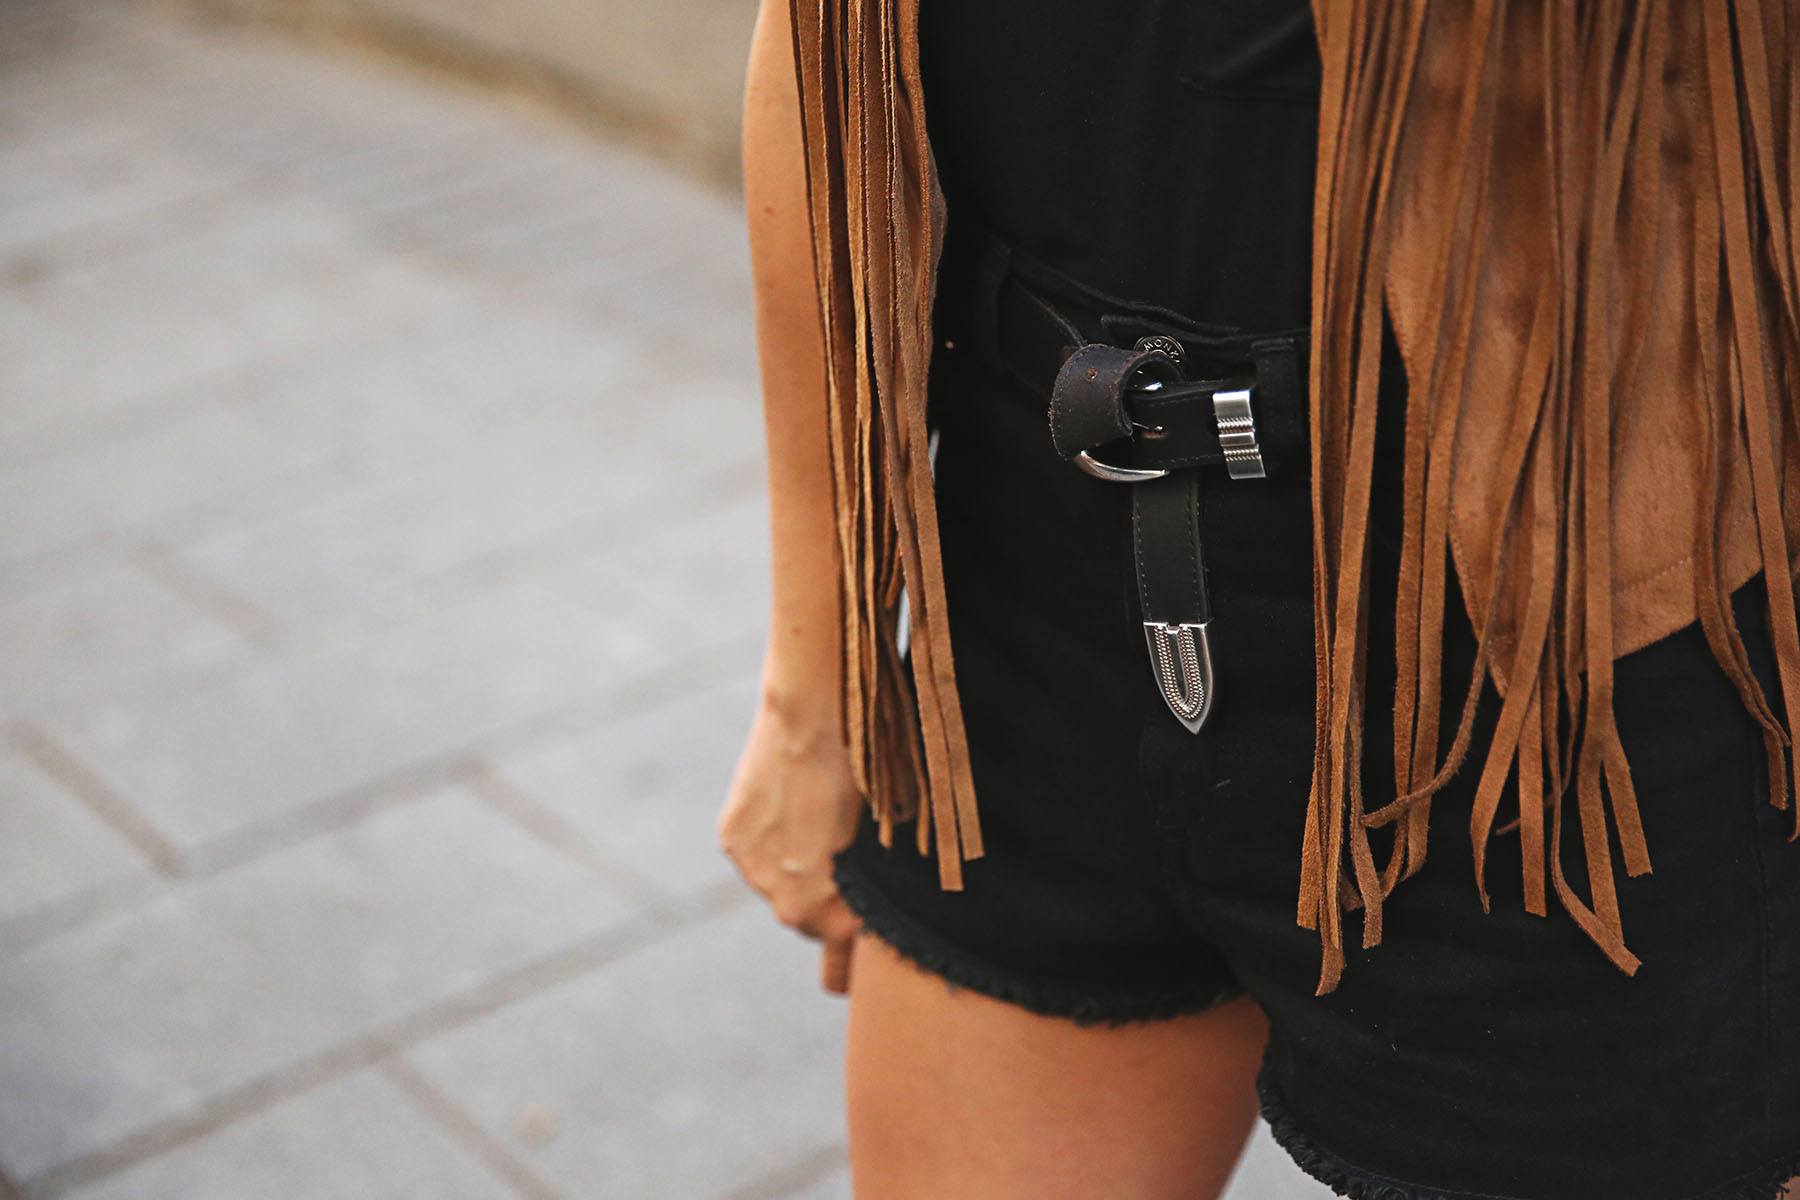 trendy-taste-look-outfit-street-style-ootd-blog-blogger-fashion-spain-moda-españa-chaleco-flecos-fringed-vest-balenciaga-mustt-botines-camperos-shorts-negros-dior-sunnies-gafas-3